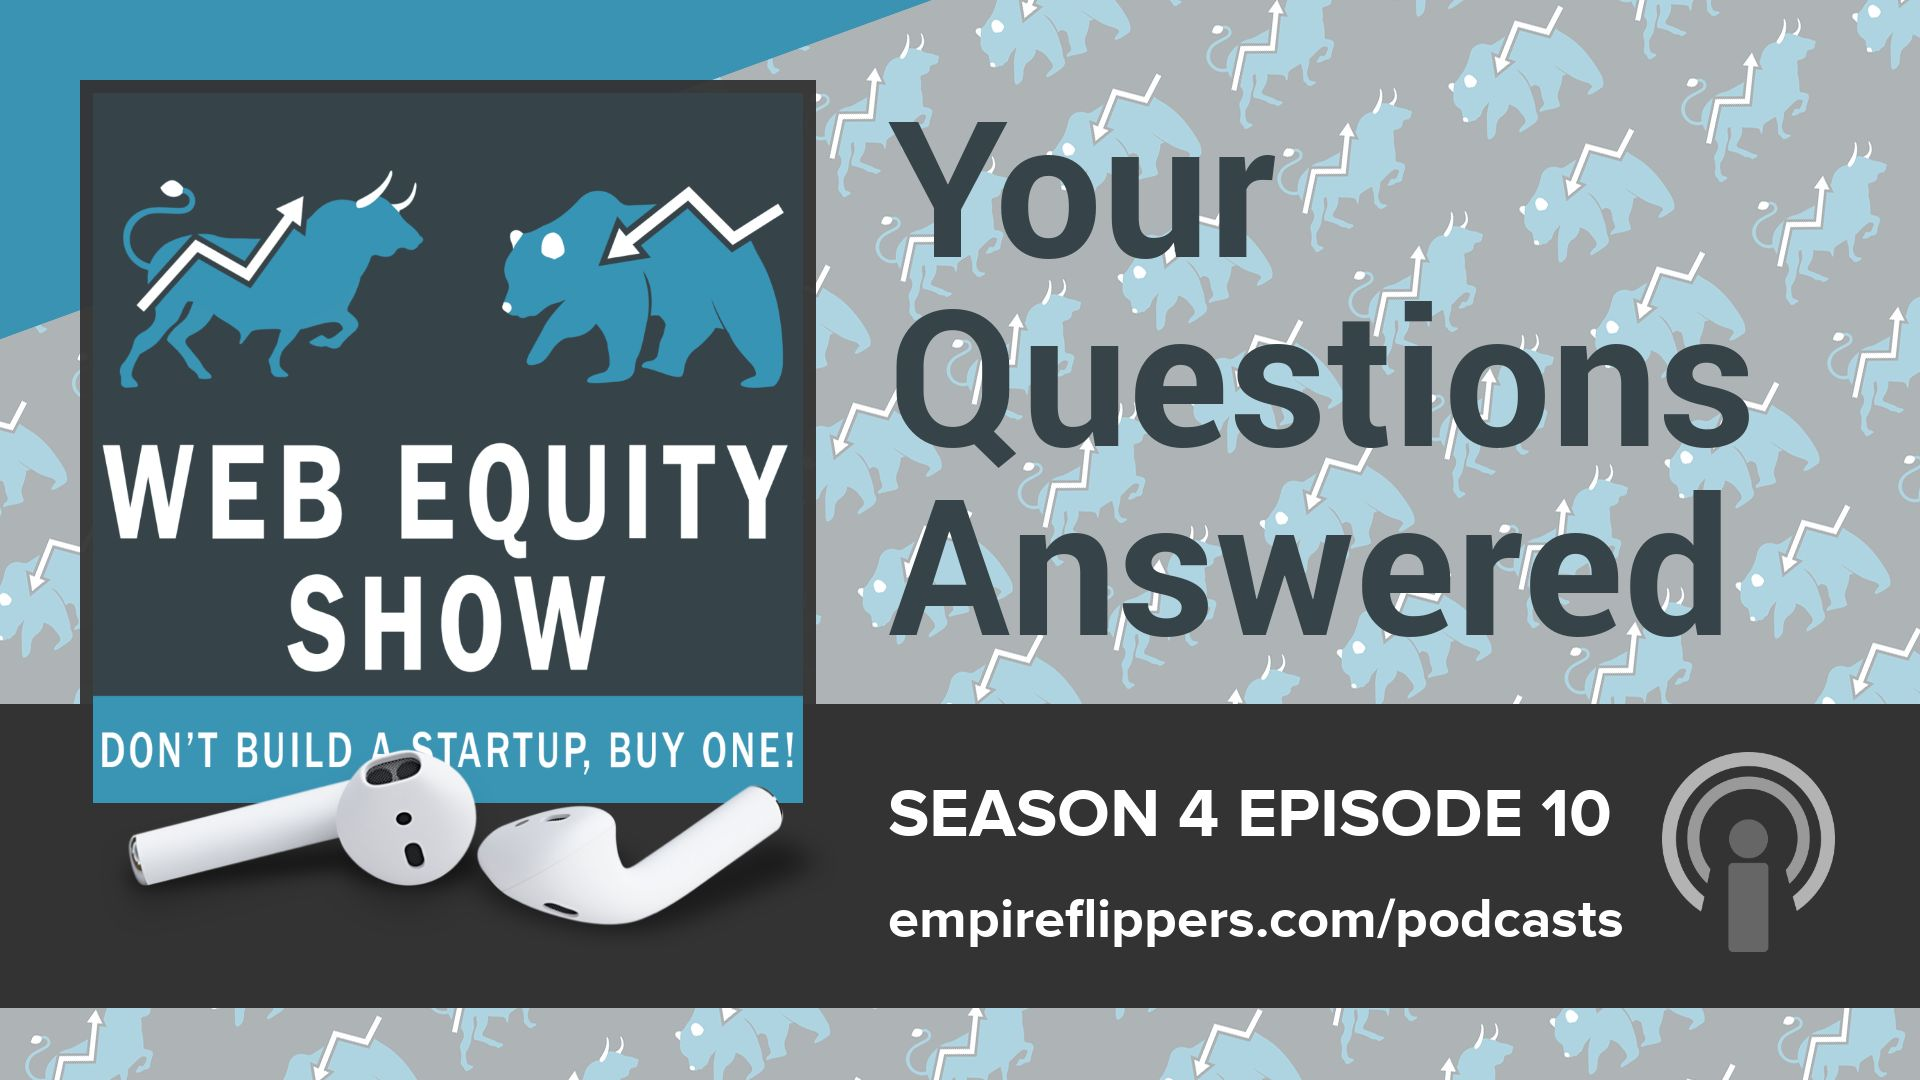 Web Equity Show - Your Questions Answered